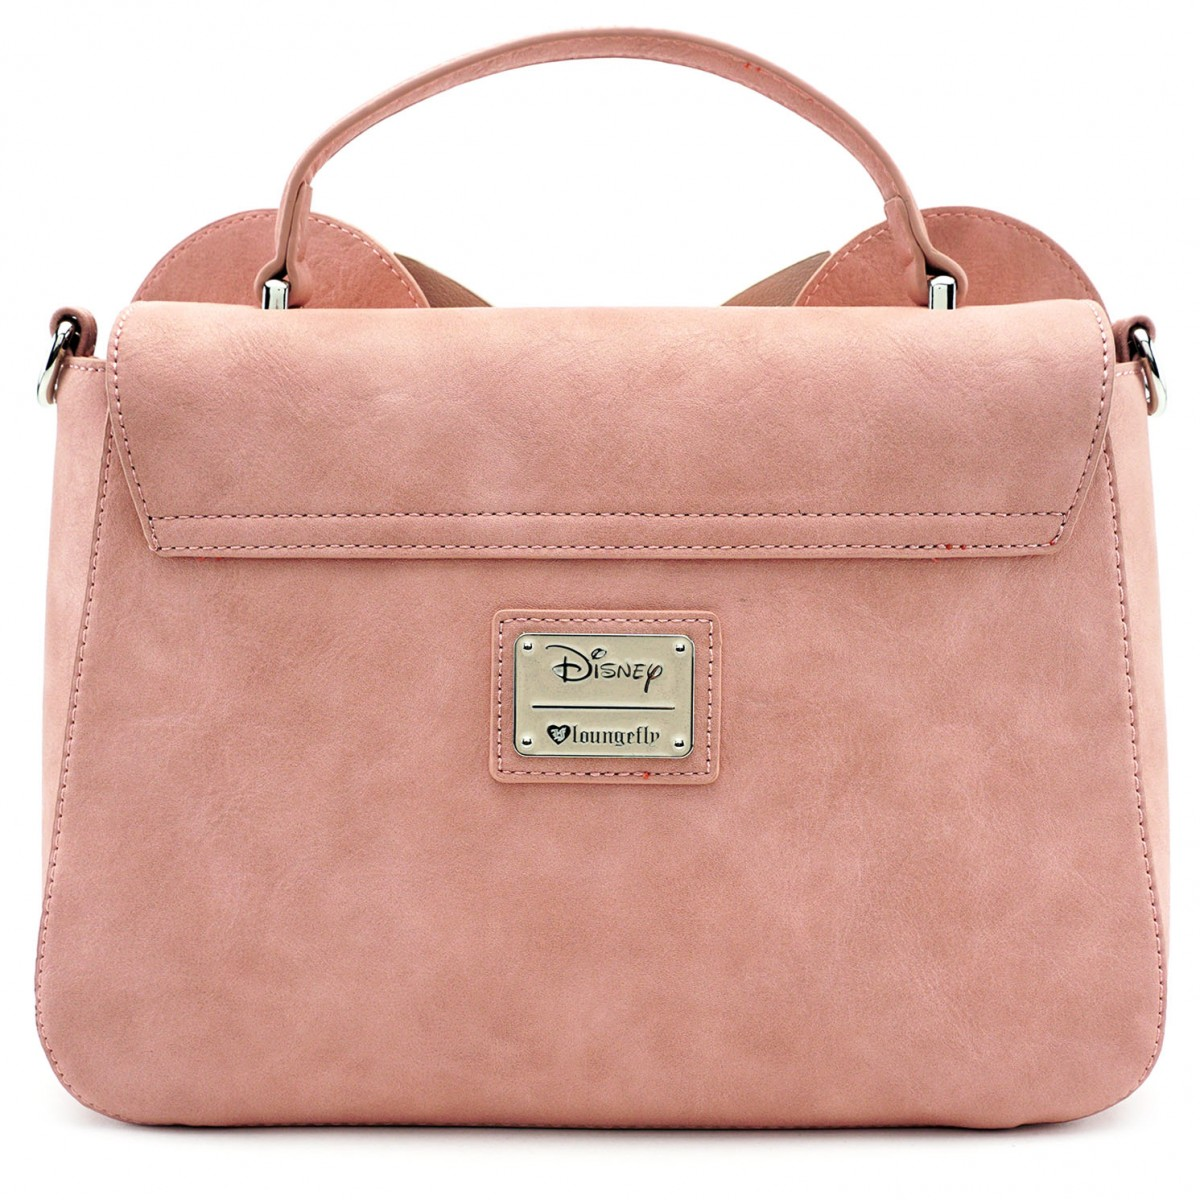 8ee3c12991d Disney Crossbody Bag - Loungefly x Minnie Ears and Bow - Pink. Hover to zoom